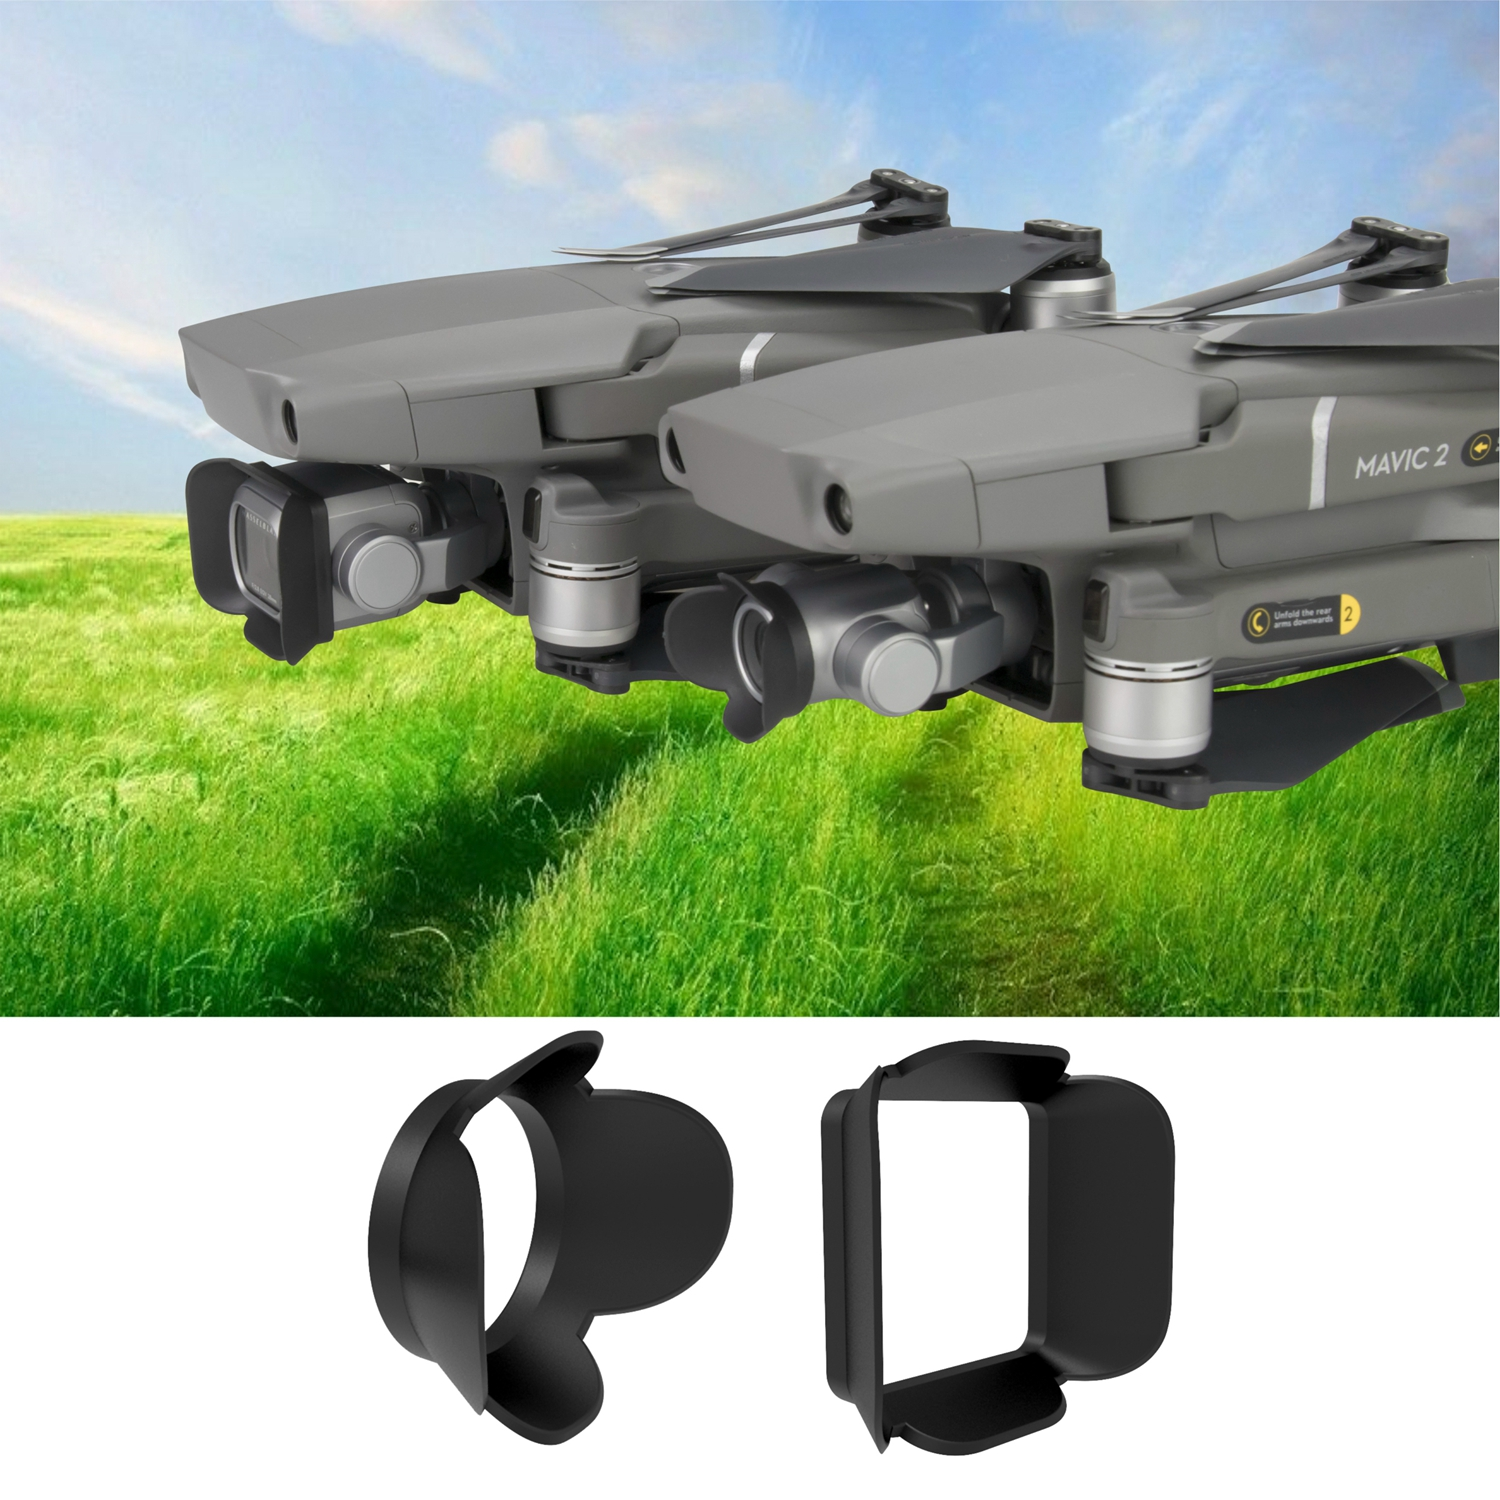 Mavic 2 Camera Lens Sun Hood Cover Sun Shade Anti-glare Sunshade Gimbal Camera Protector For DJI Mavic 2 Pro Zoom Spare Parts